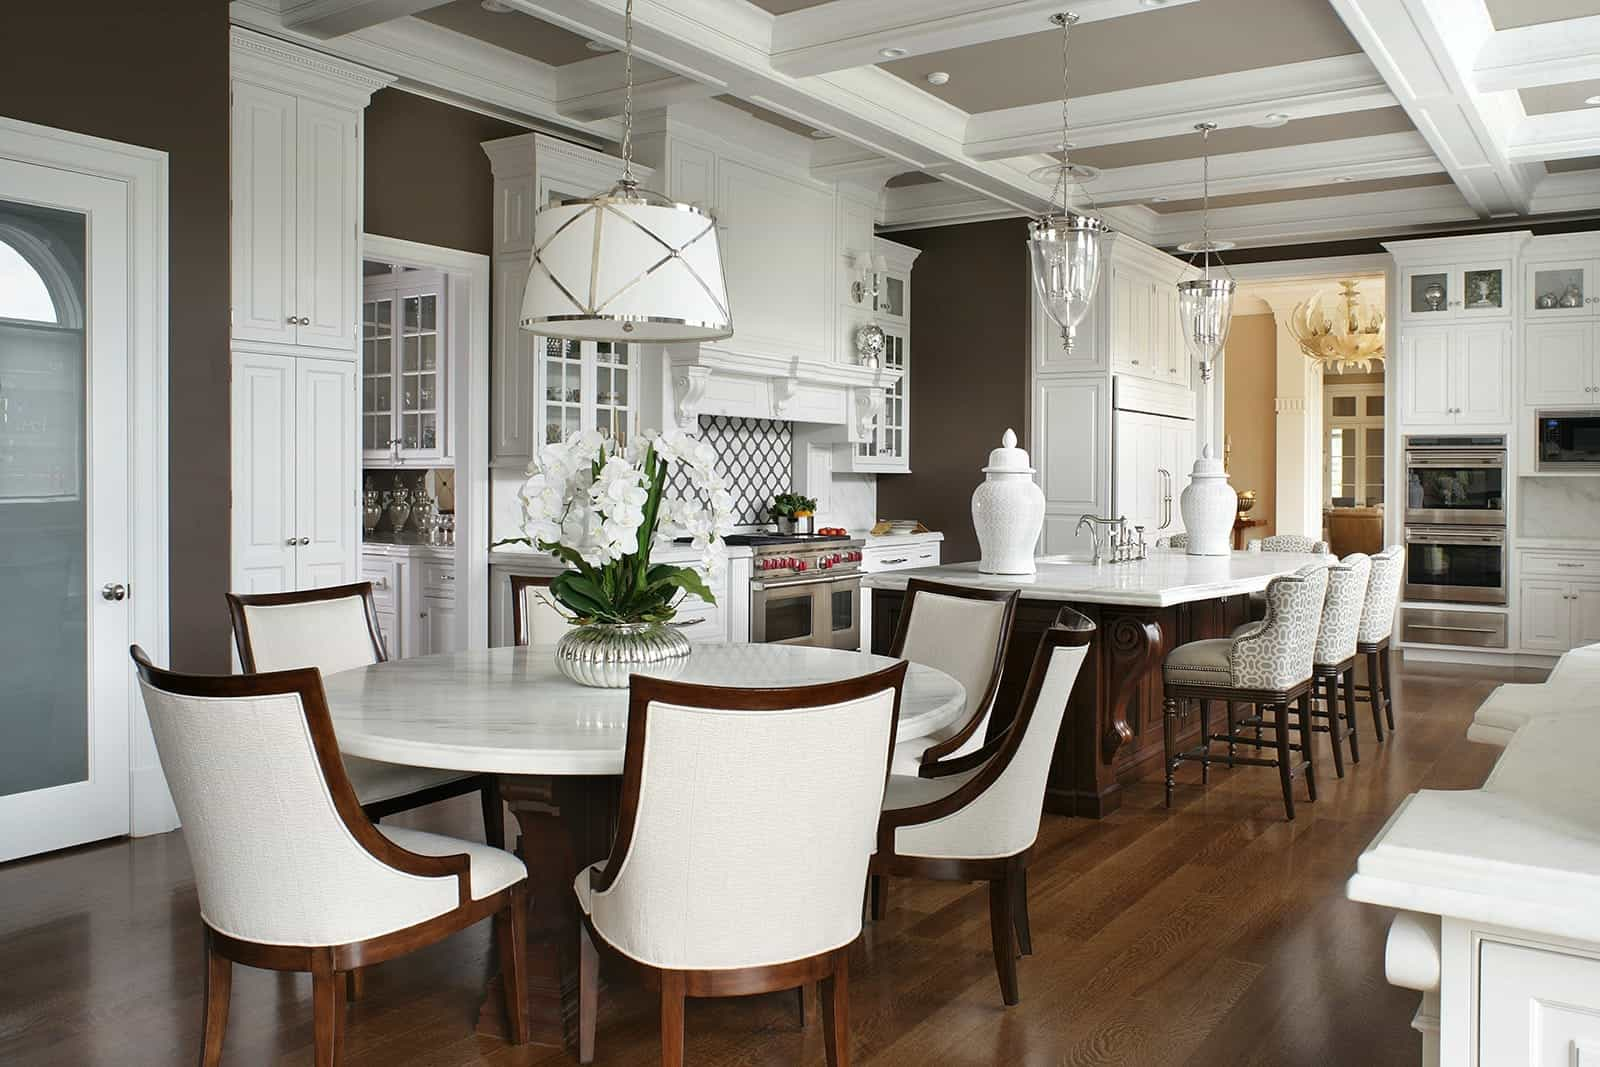 Sophisticated Italian Kitchen And Dining Room Combo With Marble Topped Dining Table (View 8 of 25)